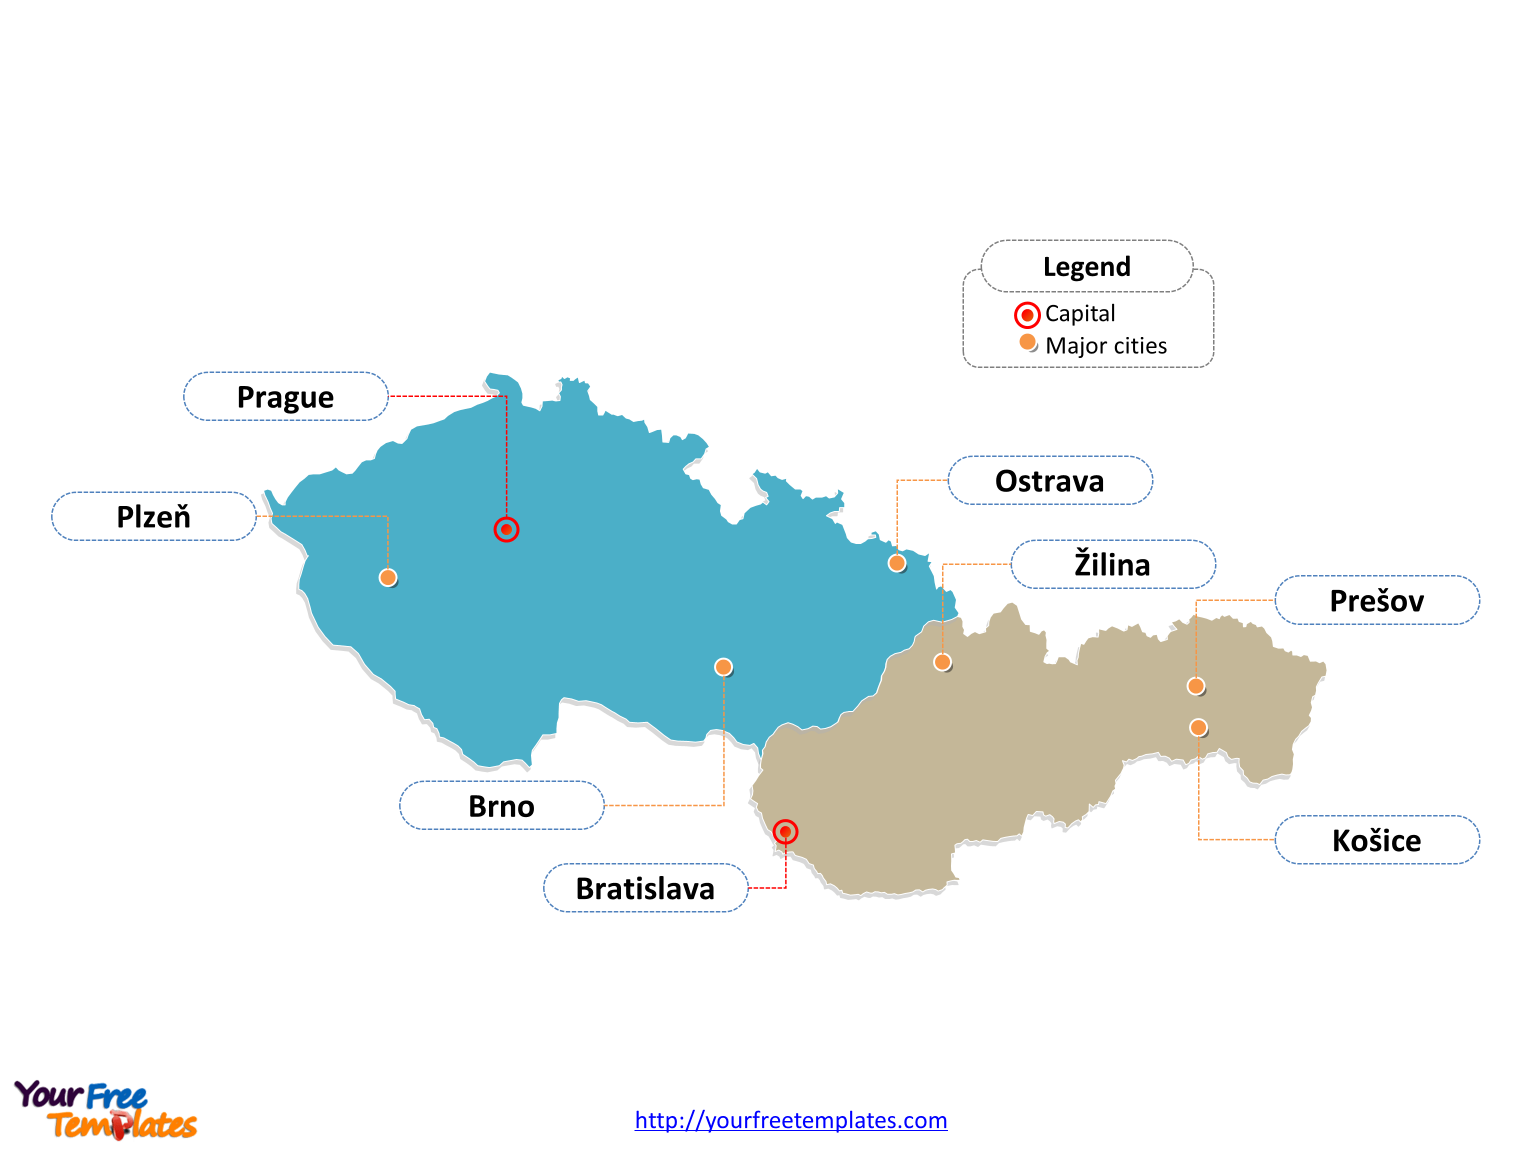 Czech Republic and Slovakia country Outline map labeled with capitals and major cities